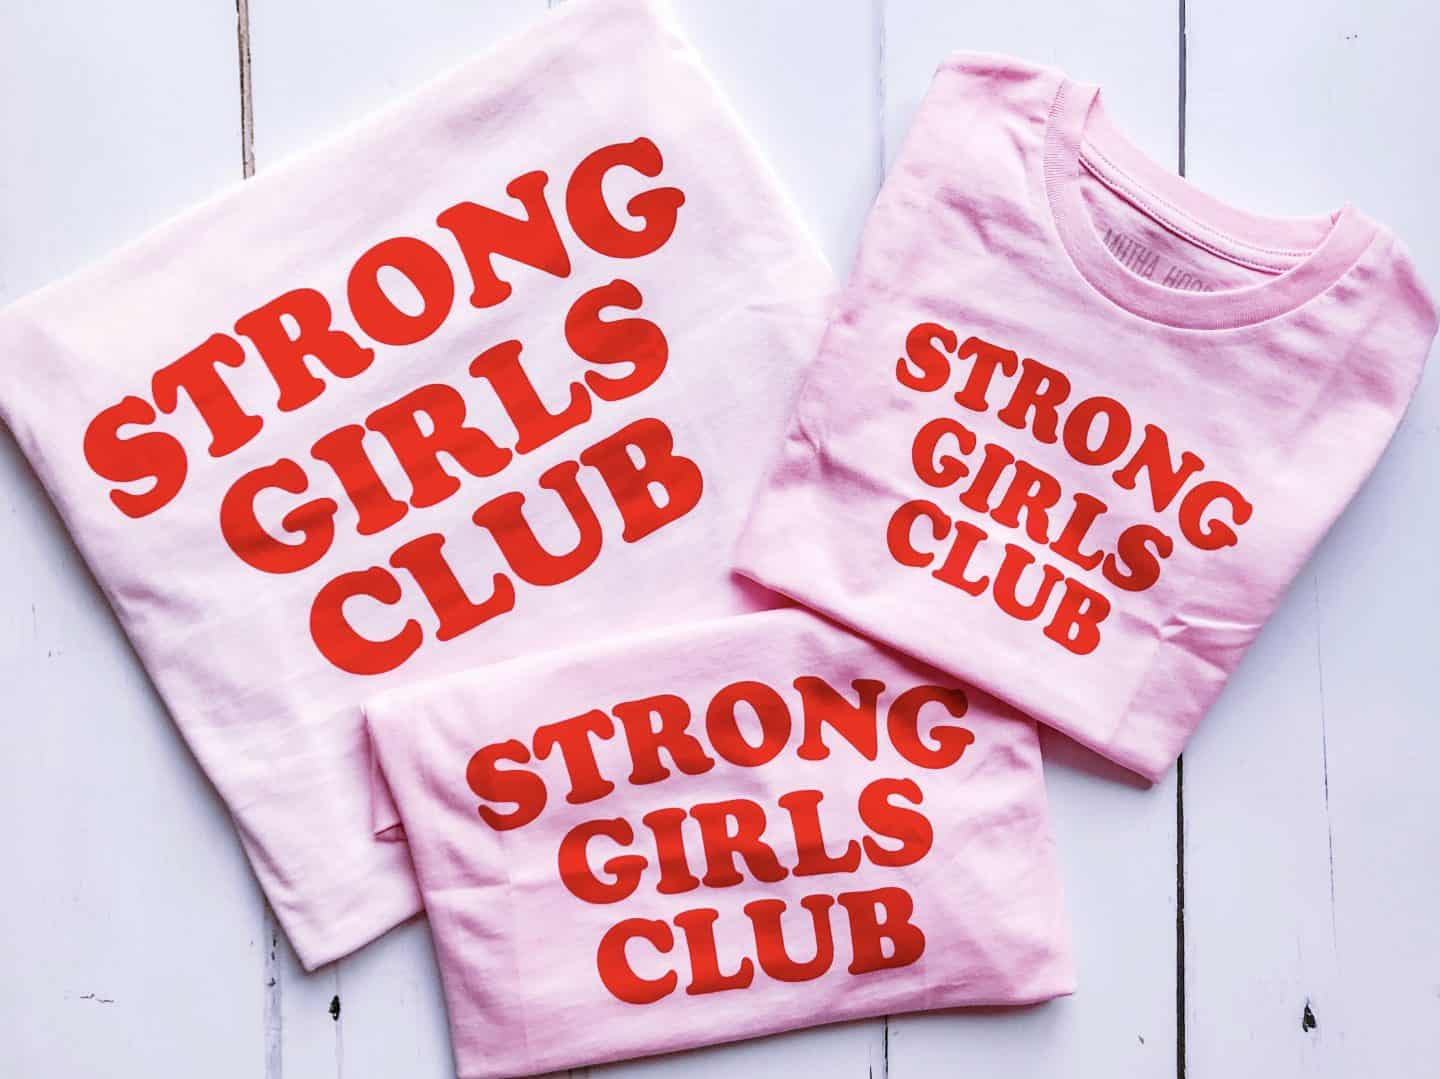 Three Strong Girls Club pink and red organic ethical empowerment T-shirts by MuthaHood